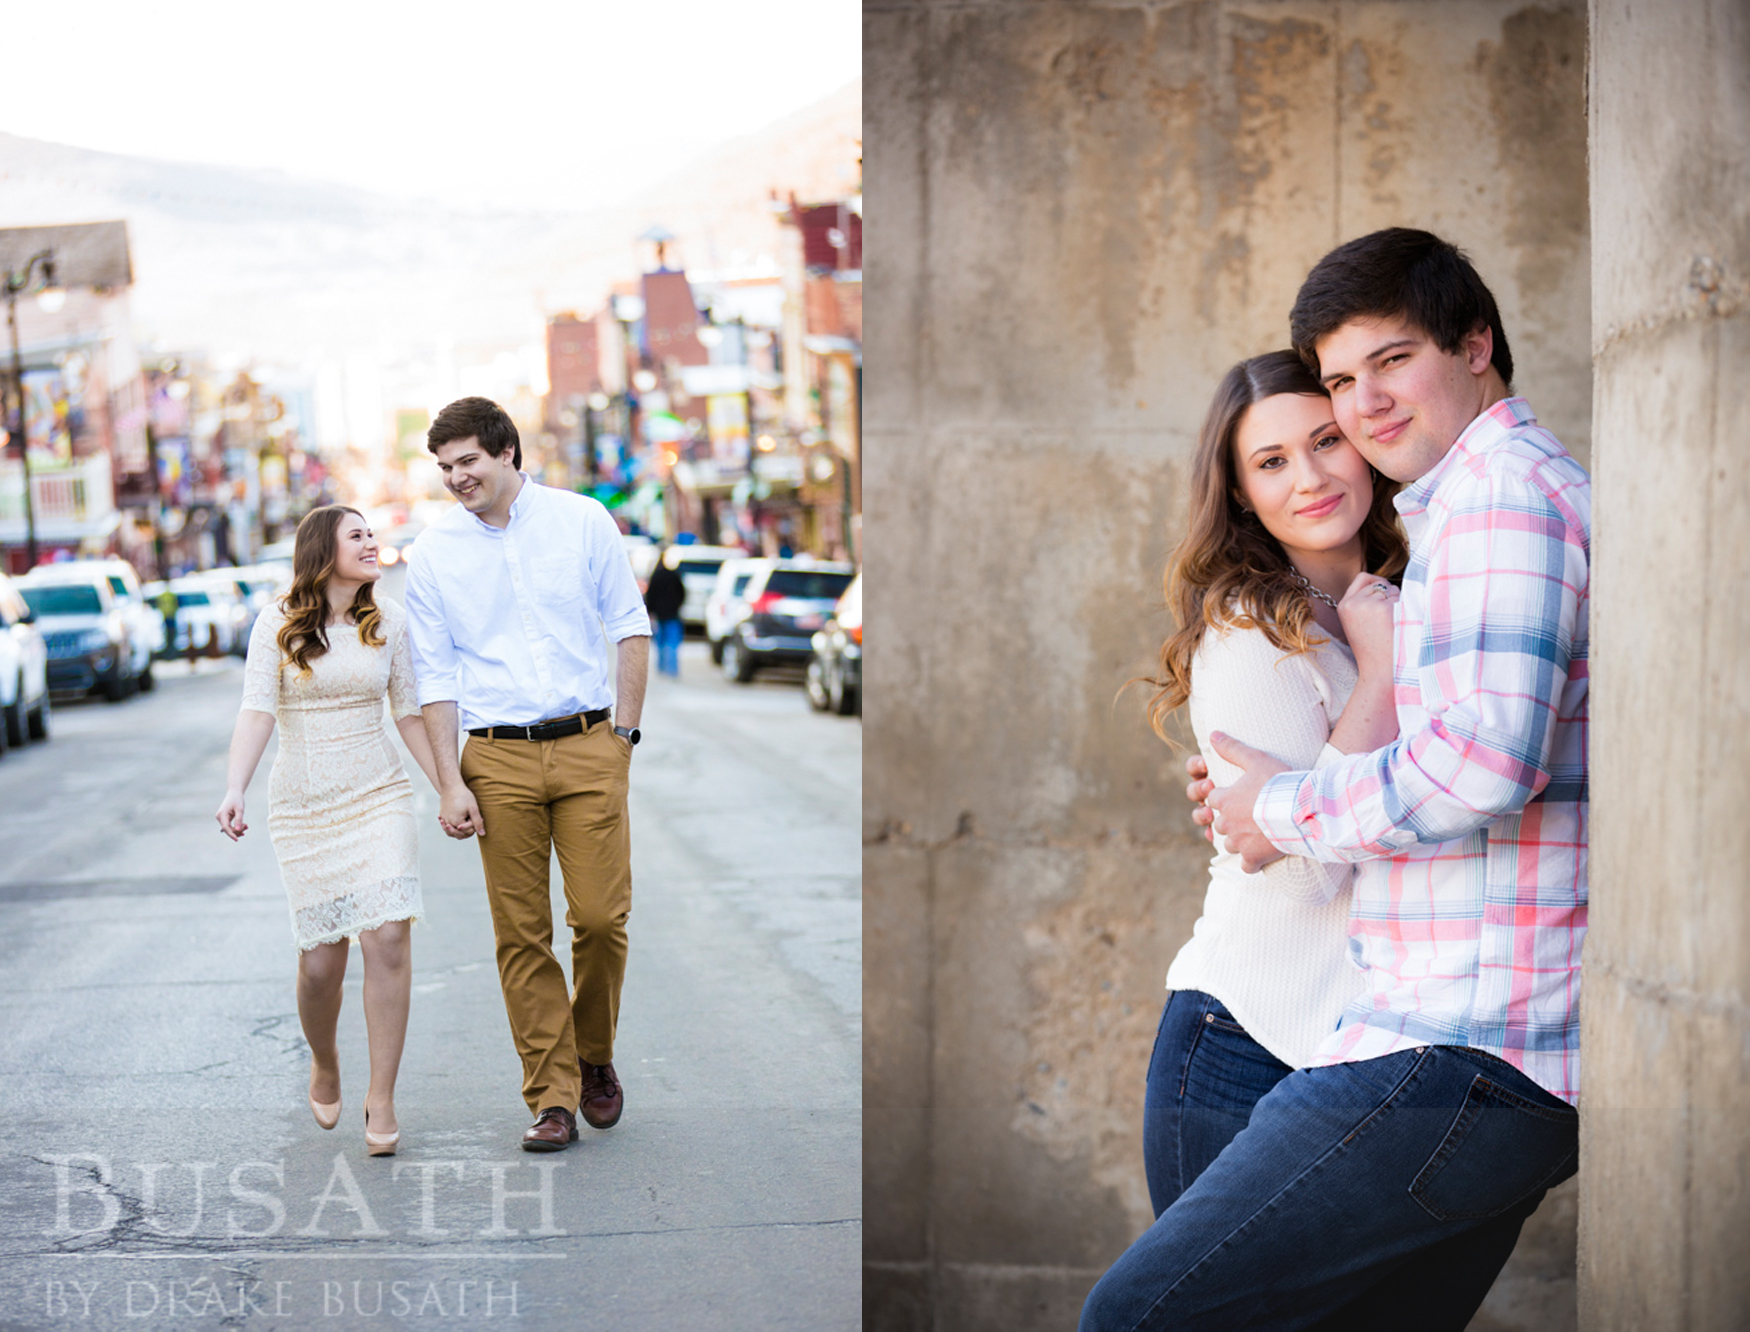 Engagement Photographer, Park City UT